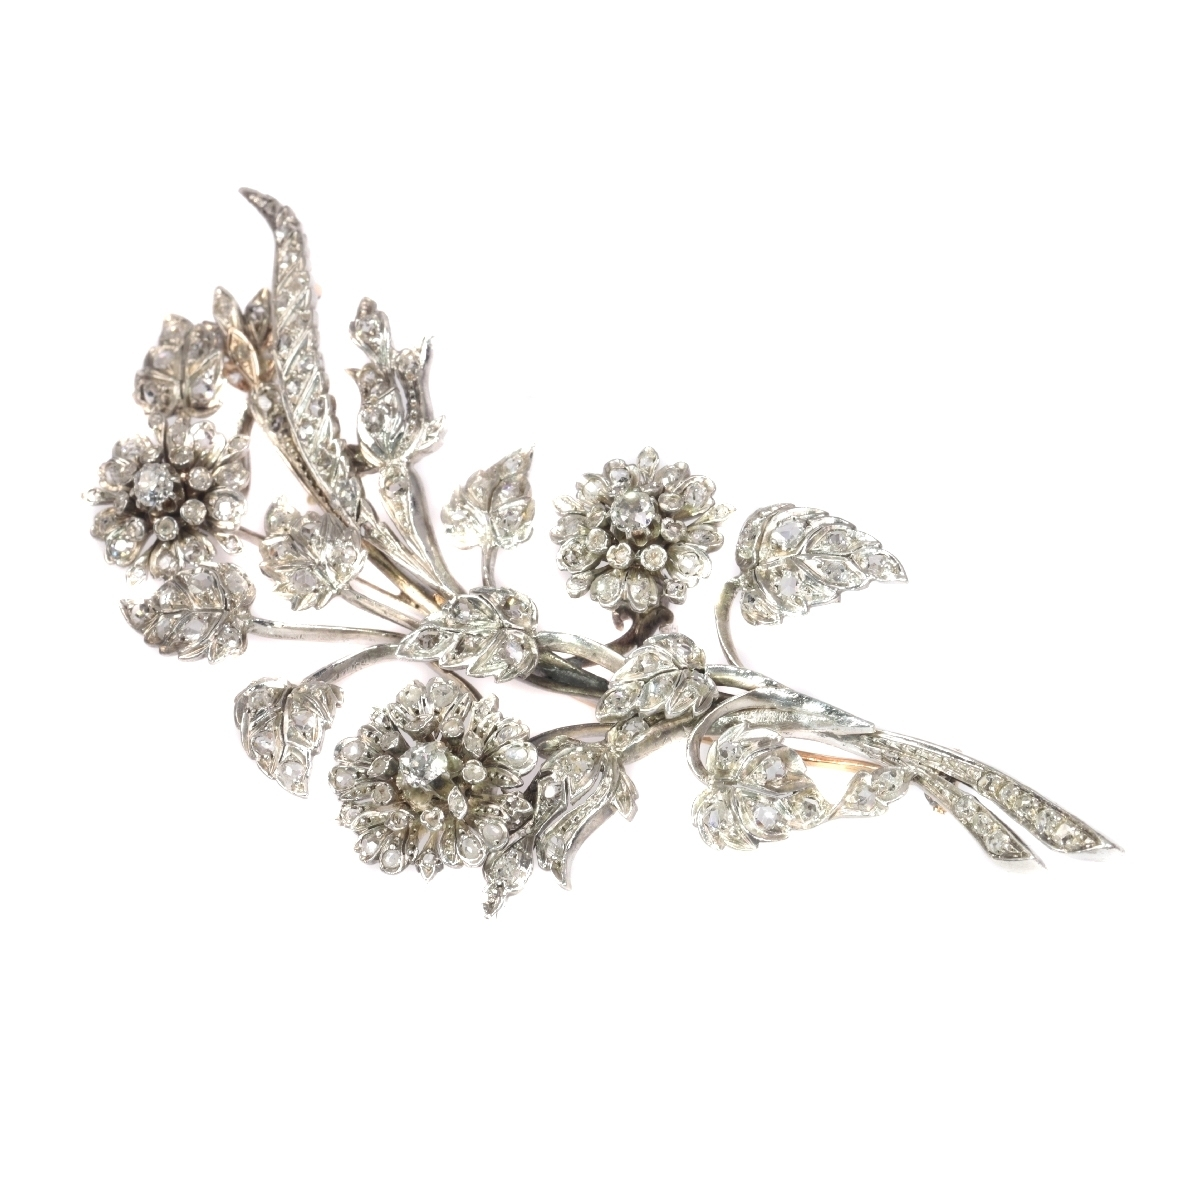 Antique French diamond branch brooch with 165 diamonds